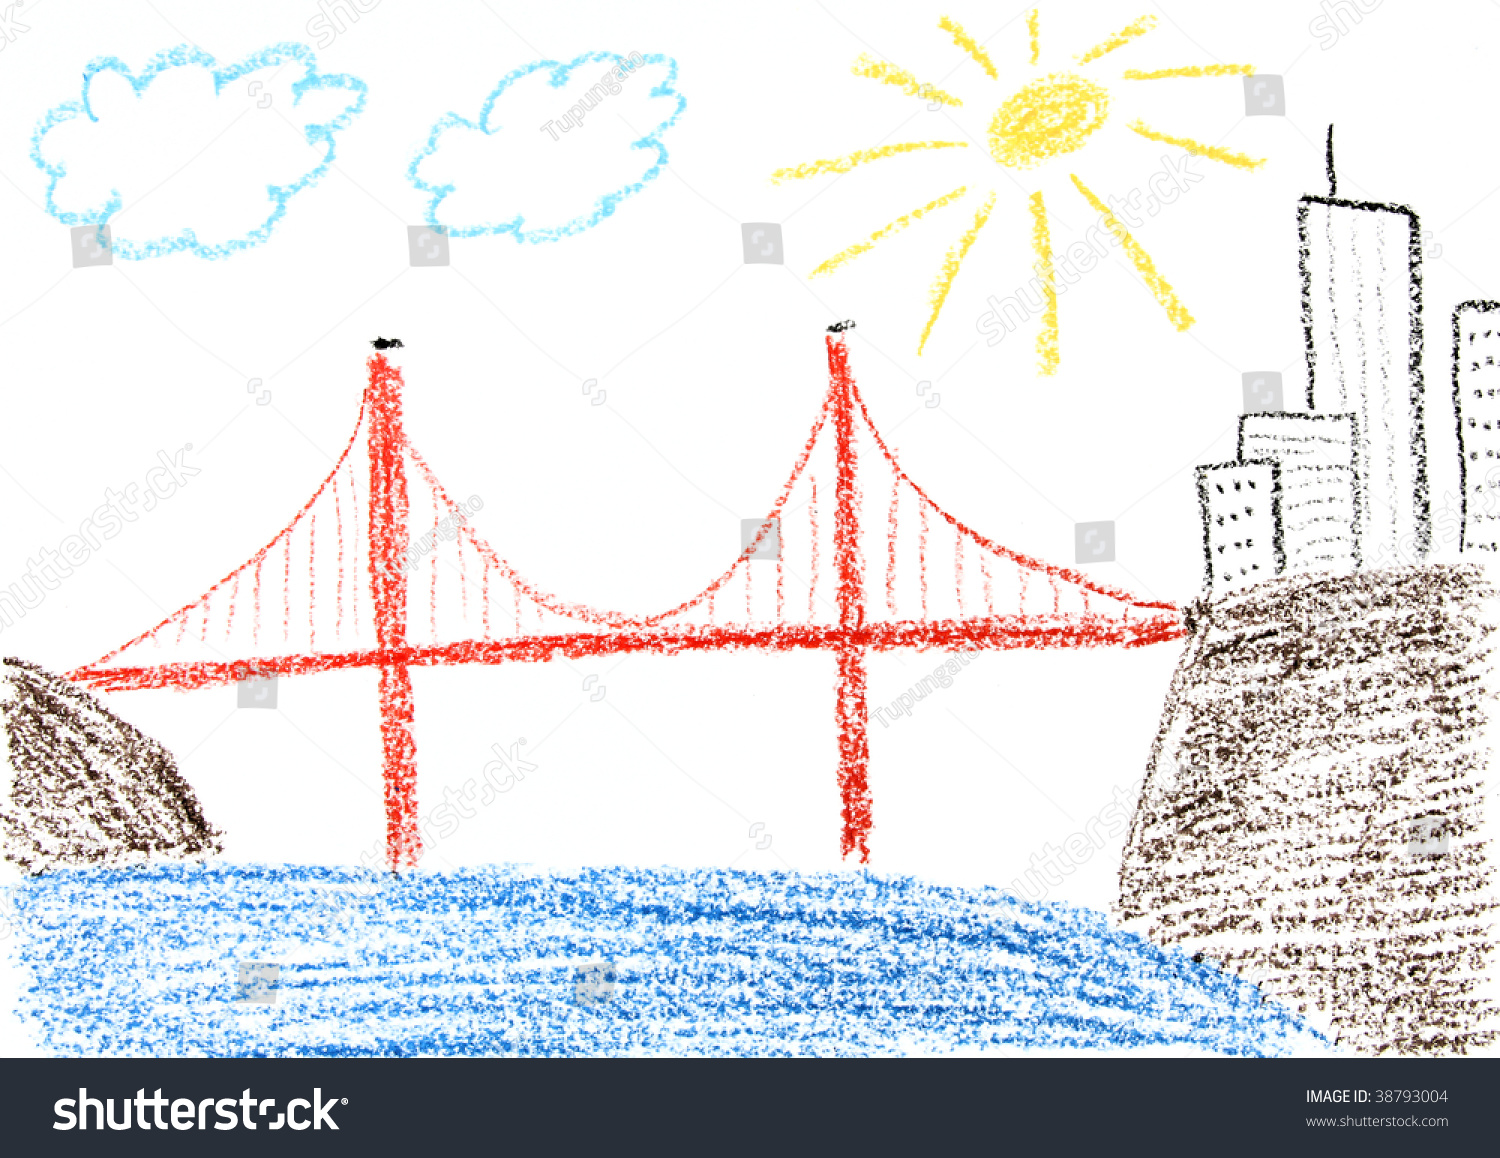 Child drawing of Golden Gate bridge and San Francisco made with wax crayons - Simple Golden Gate Bridge PNG